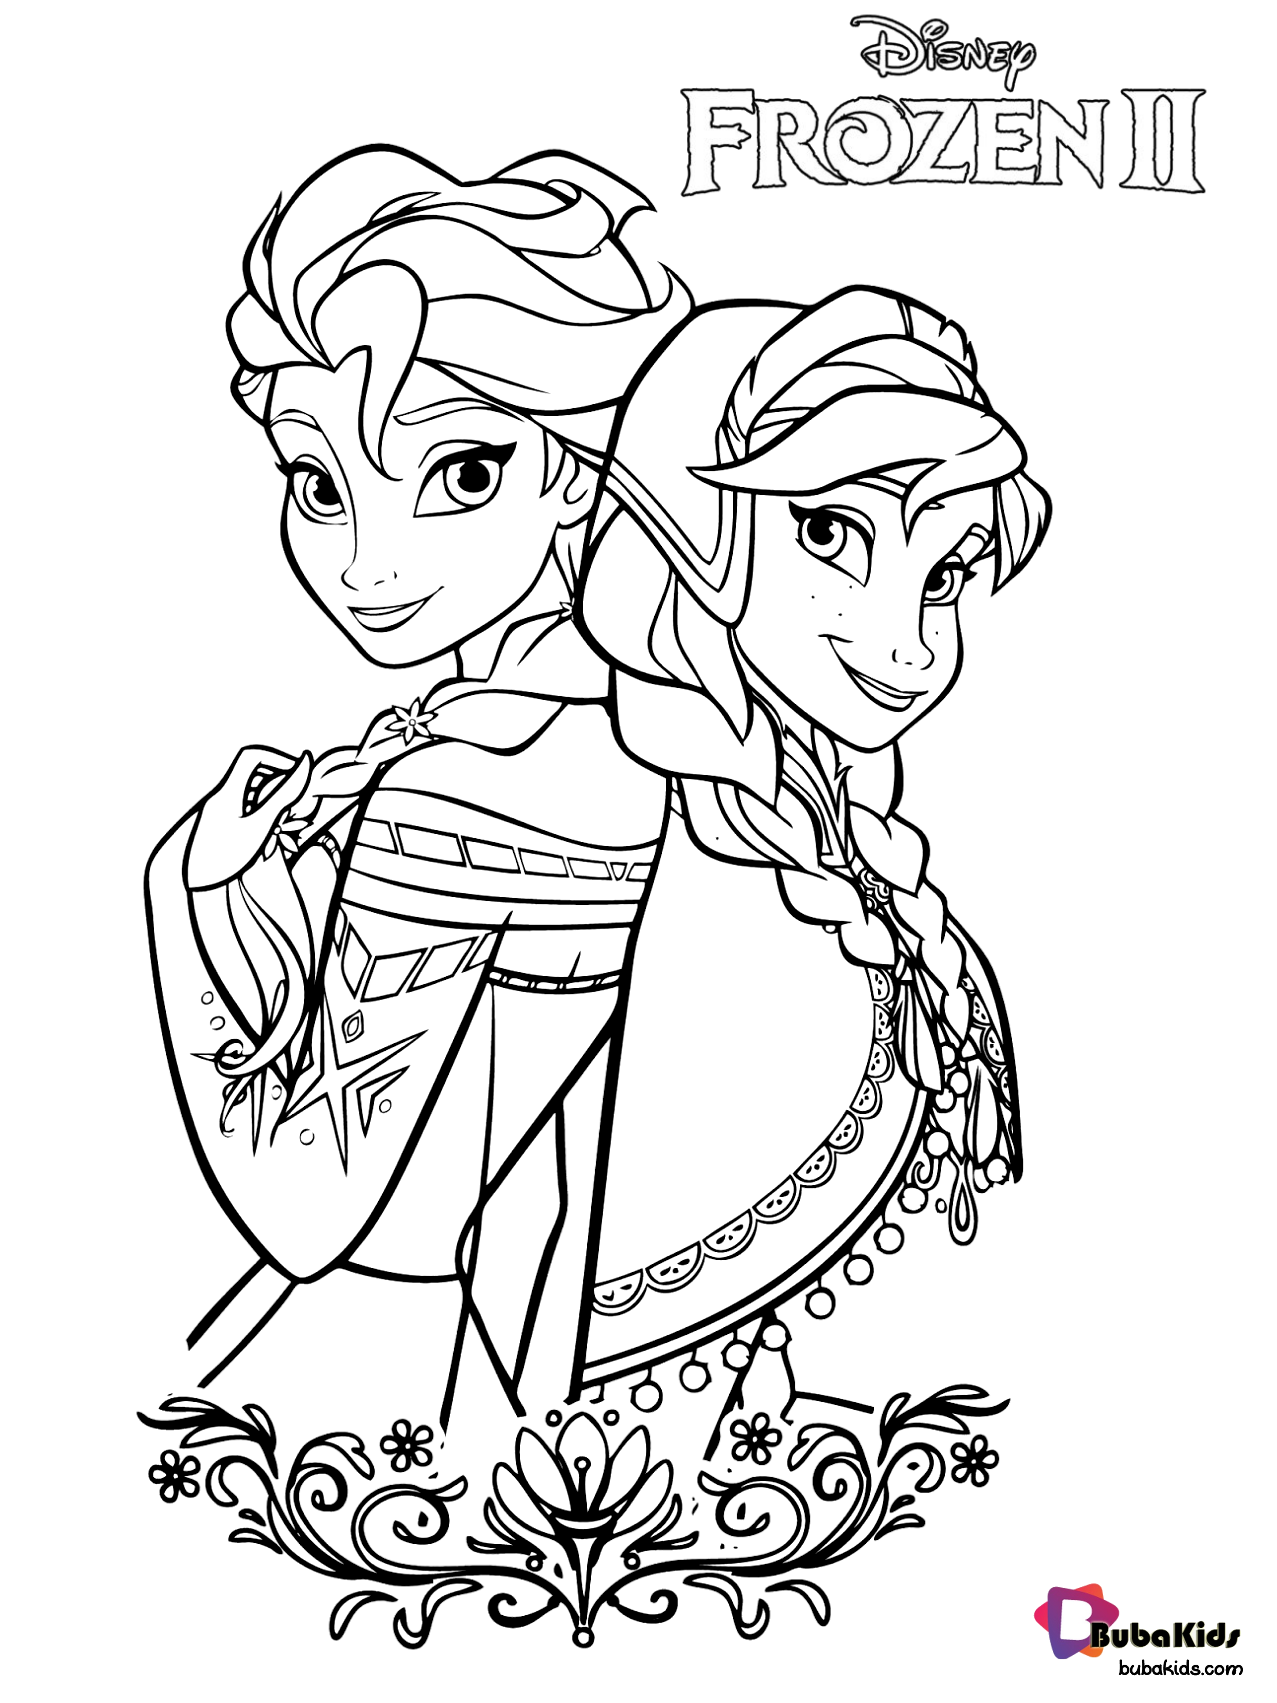 Free Download And Printable Coloring Pages Frozen 2 Coloring Pages Queen Elsa And An In 2020 Disney Princess Coloring Pages Elsa Coloring Pages Disney Coloring Pages